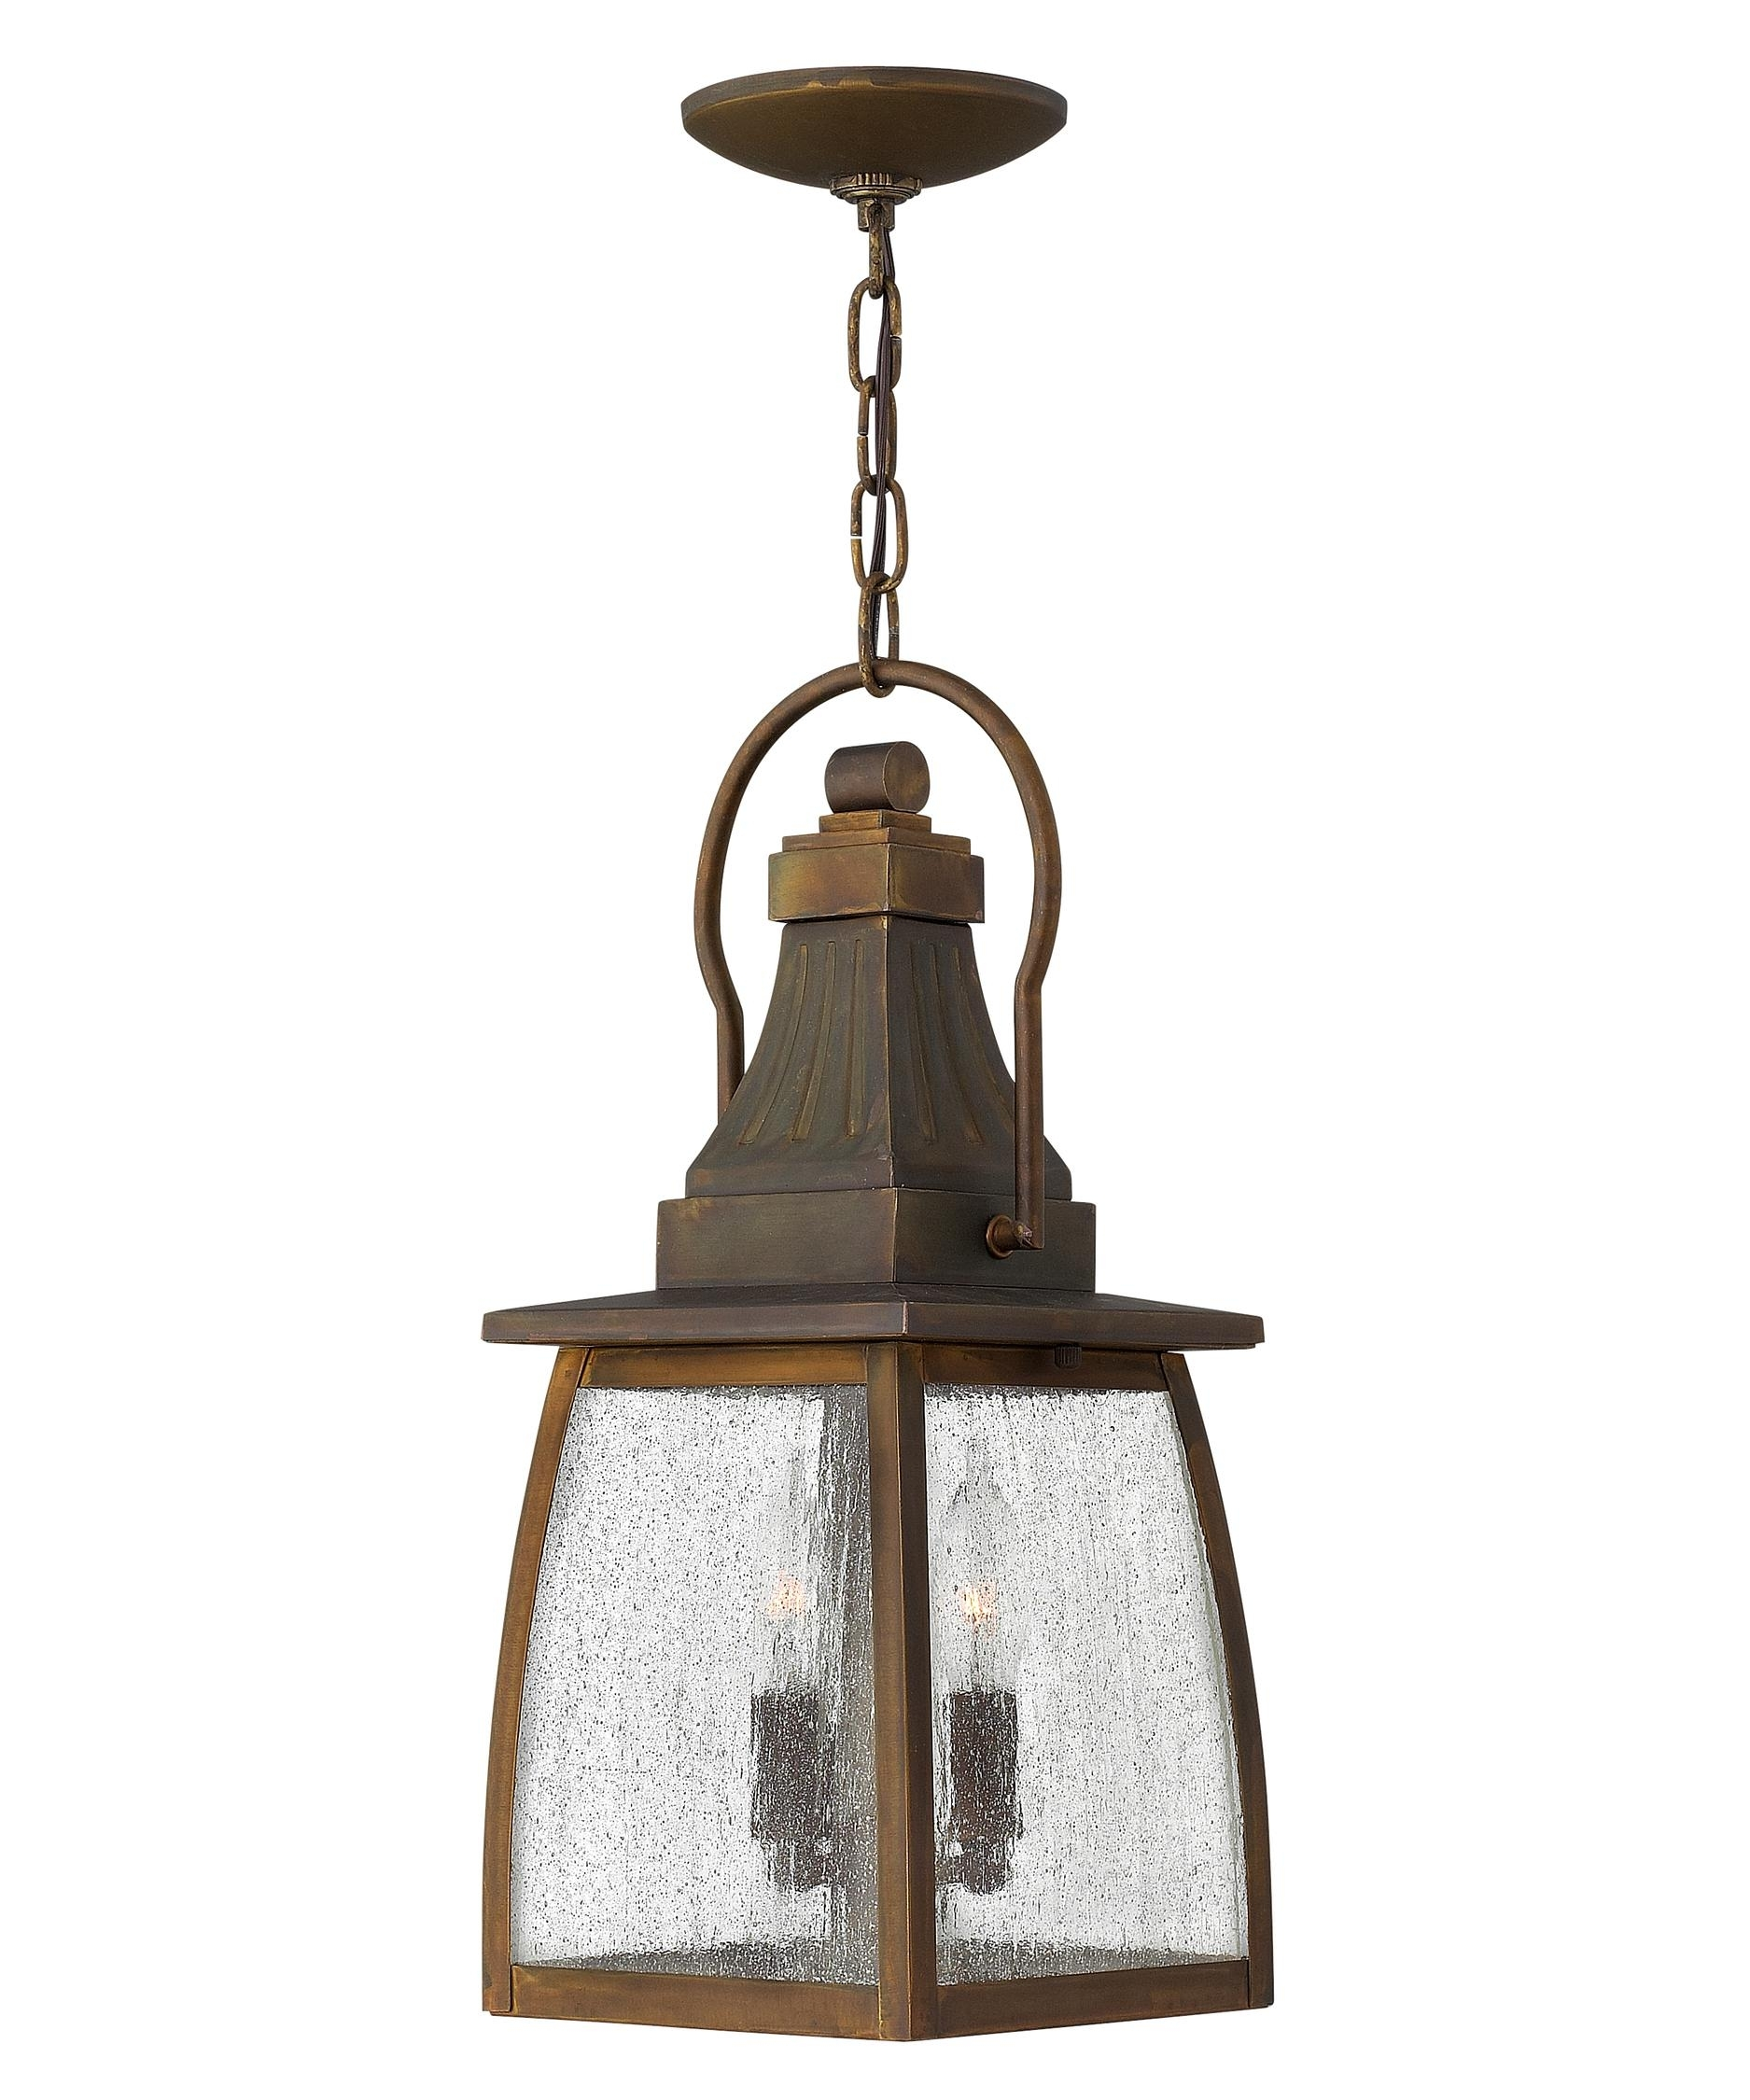 Hinkley Lighting 1202 Montauk 7 Inch Wide 2 Light Outdoor Hanging Pertaining To Modern Latern Hinkley Lighting (#9 of 15)